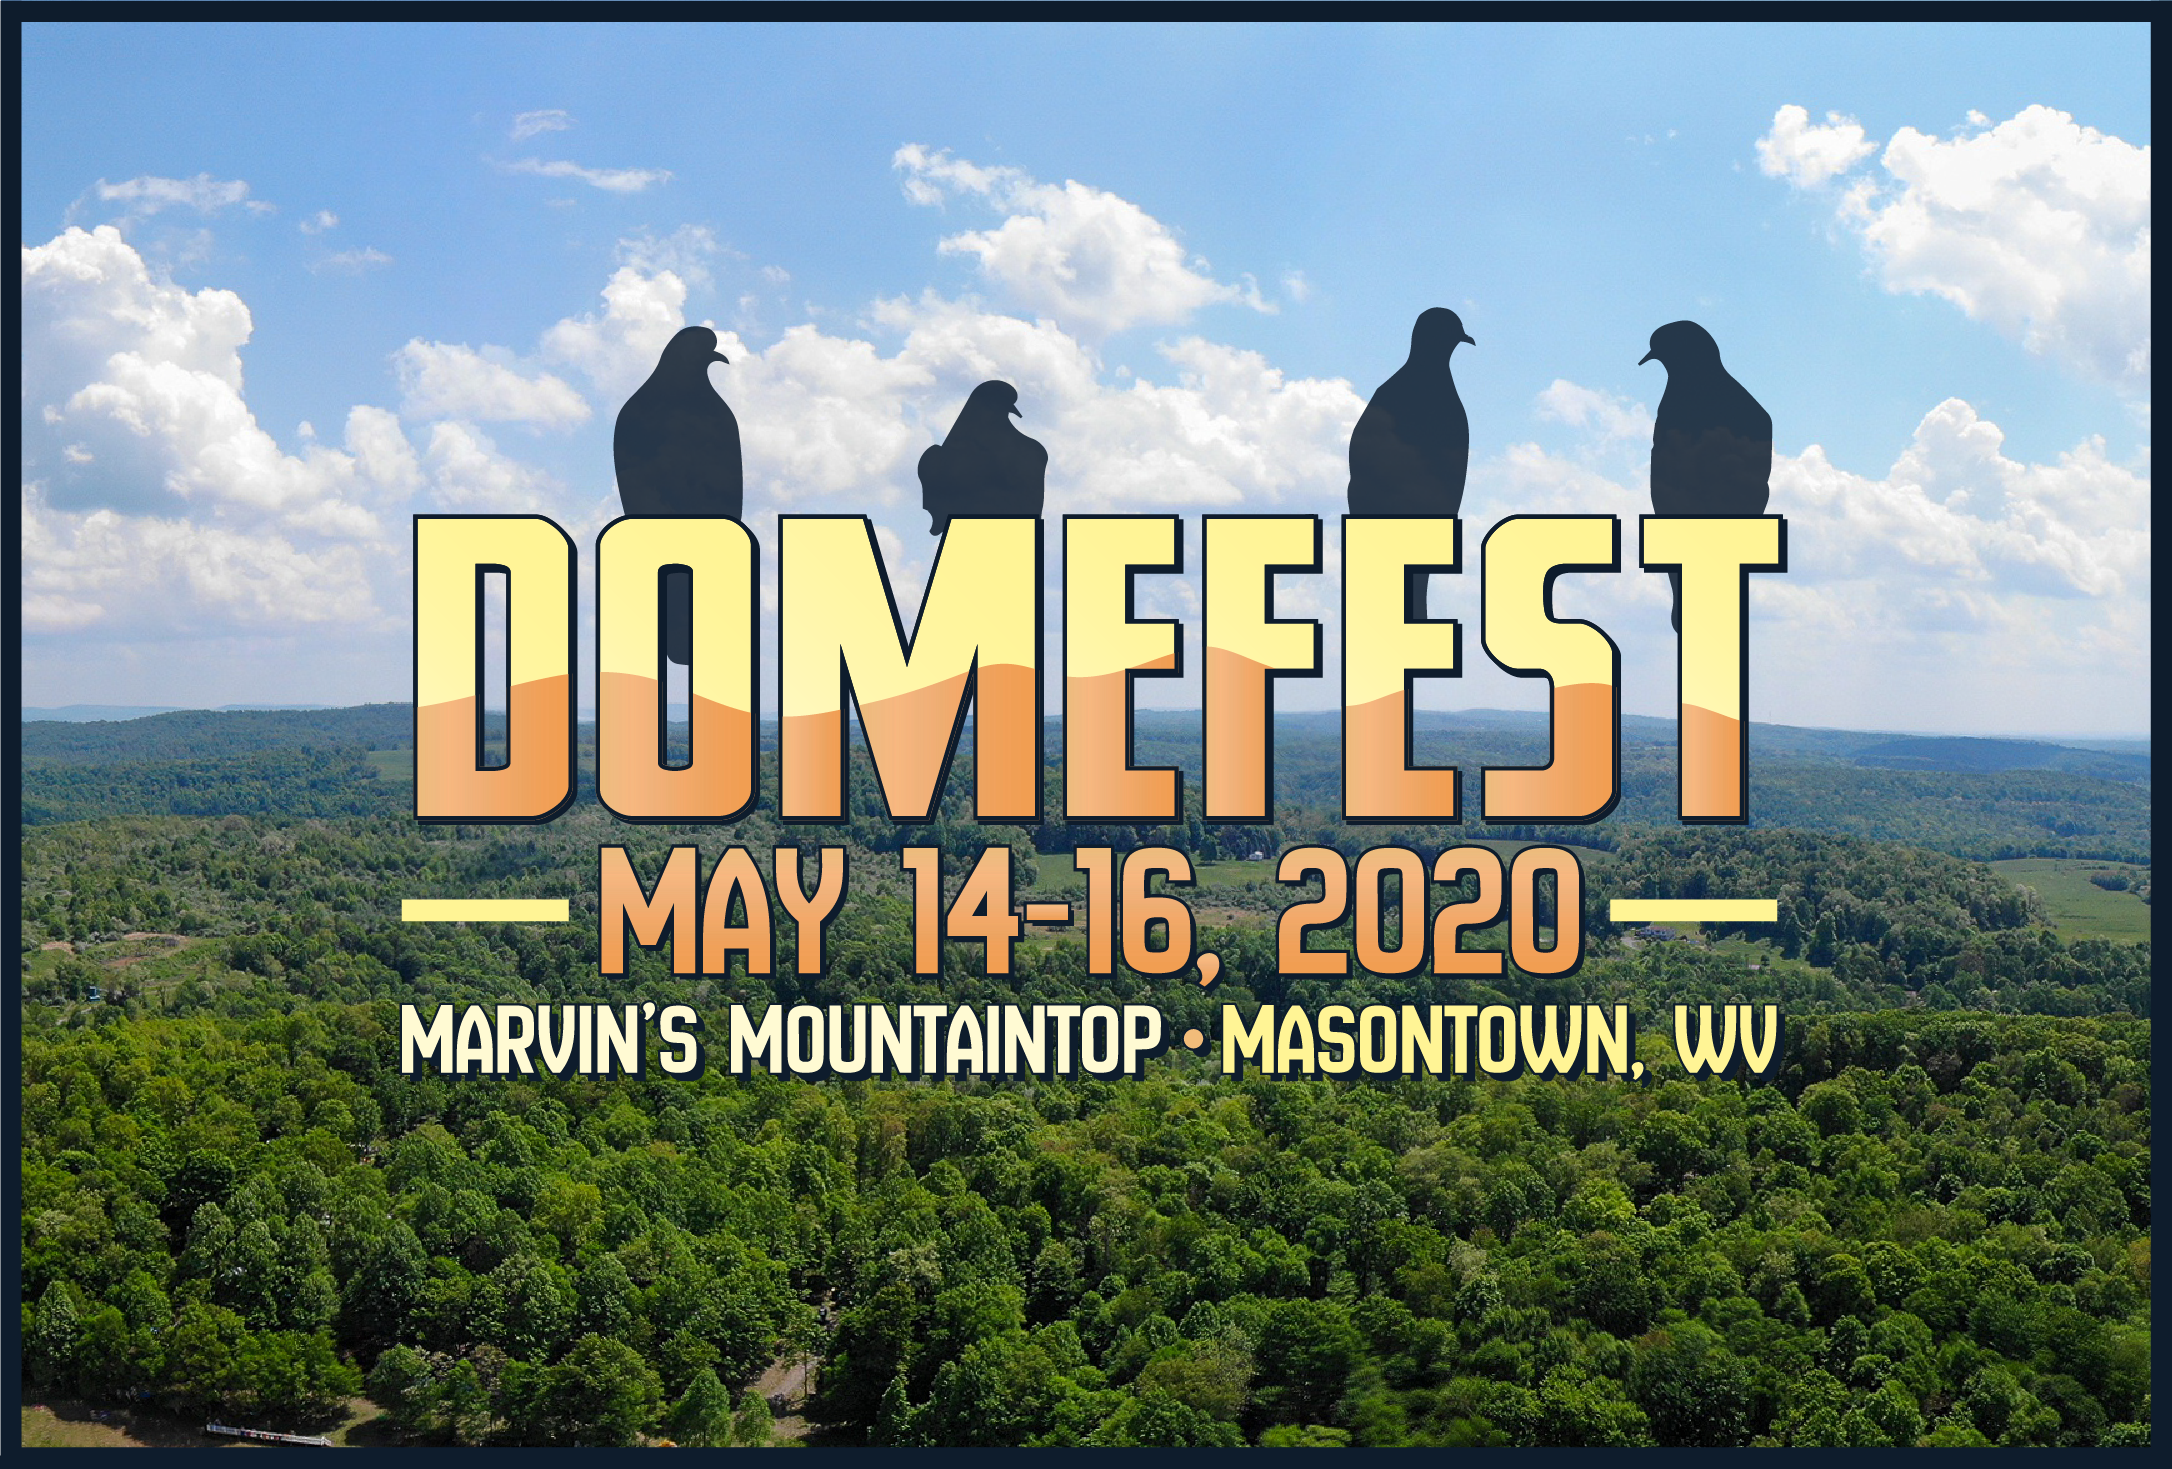 The 11th Annual Domefest Returns to Marvin's Mountaintop in Masontown, WV on May 14-16, 2020